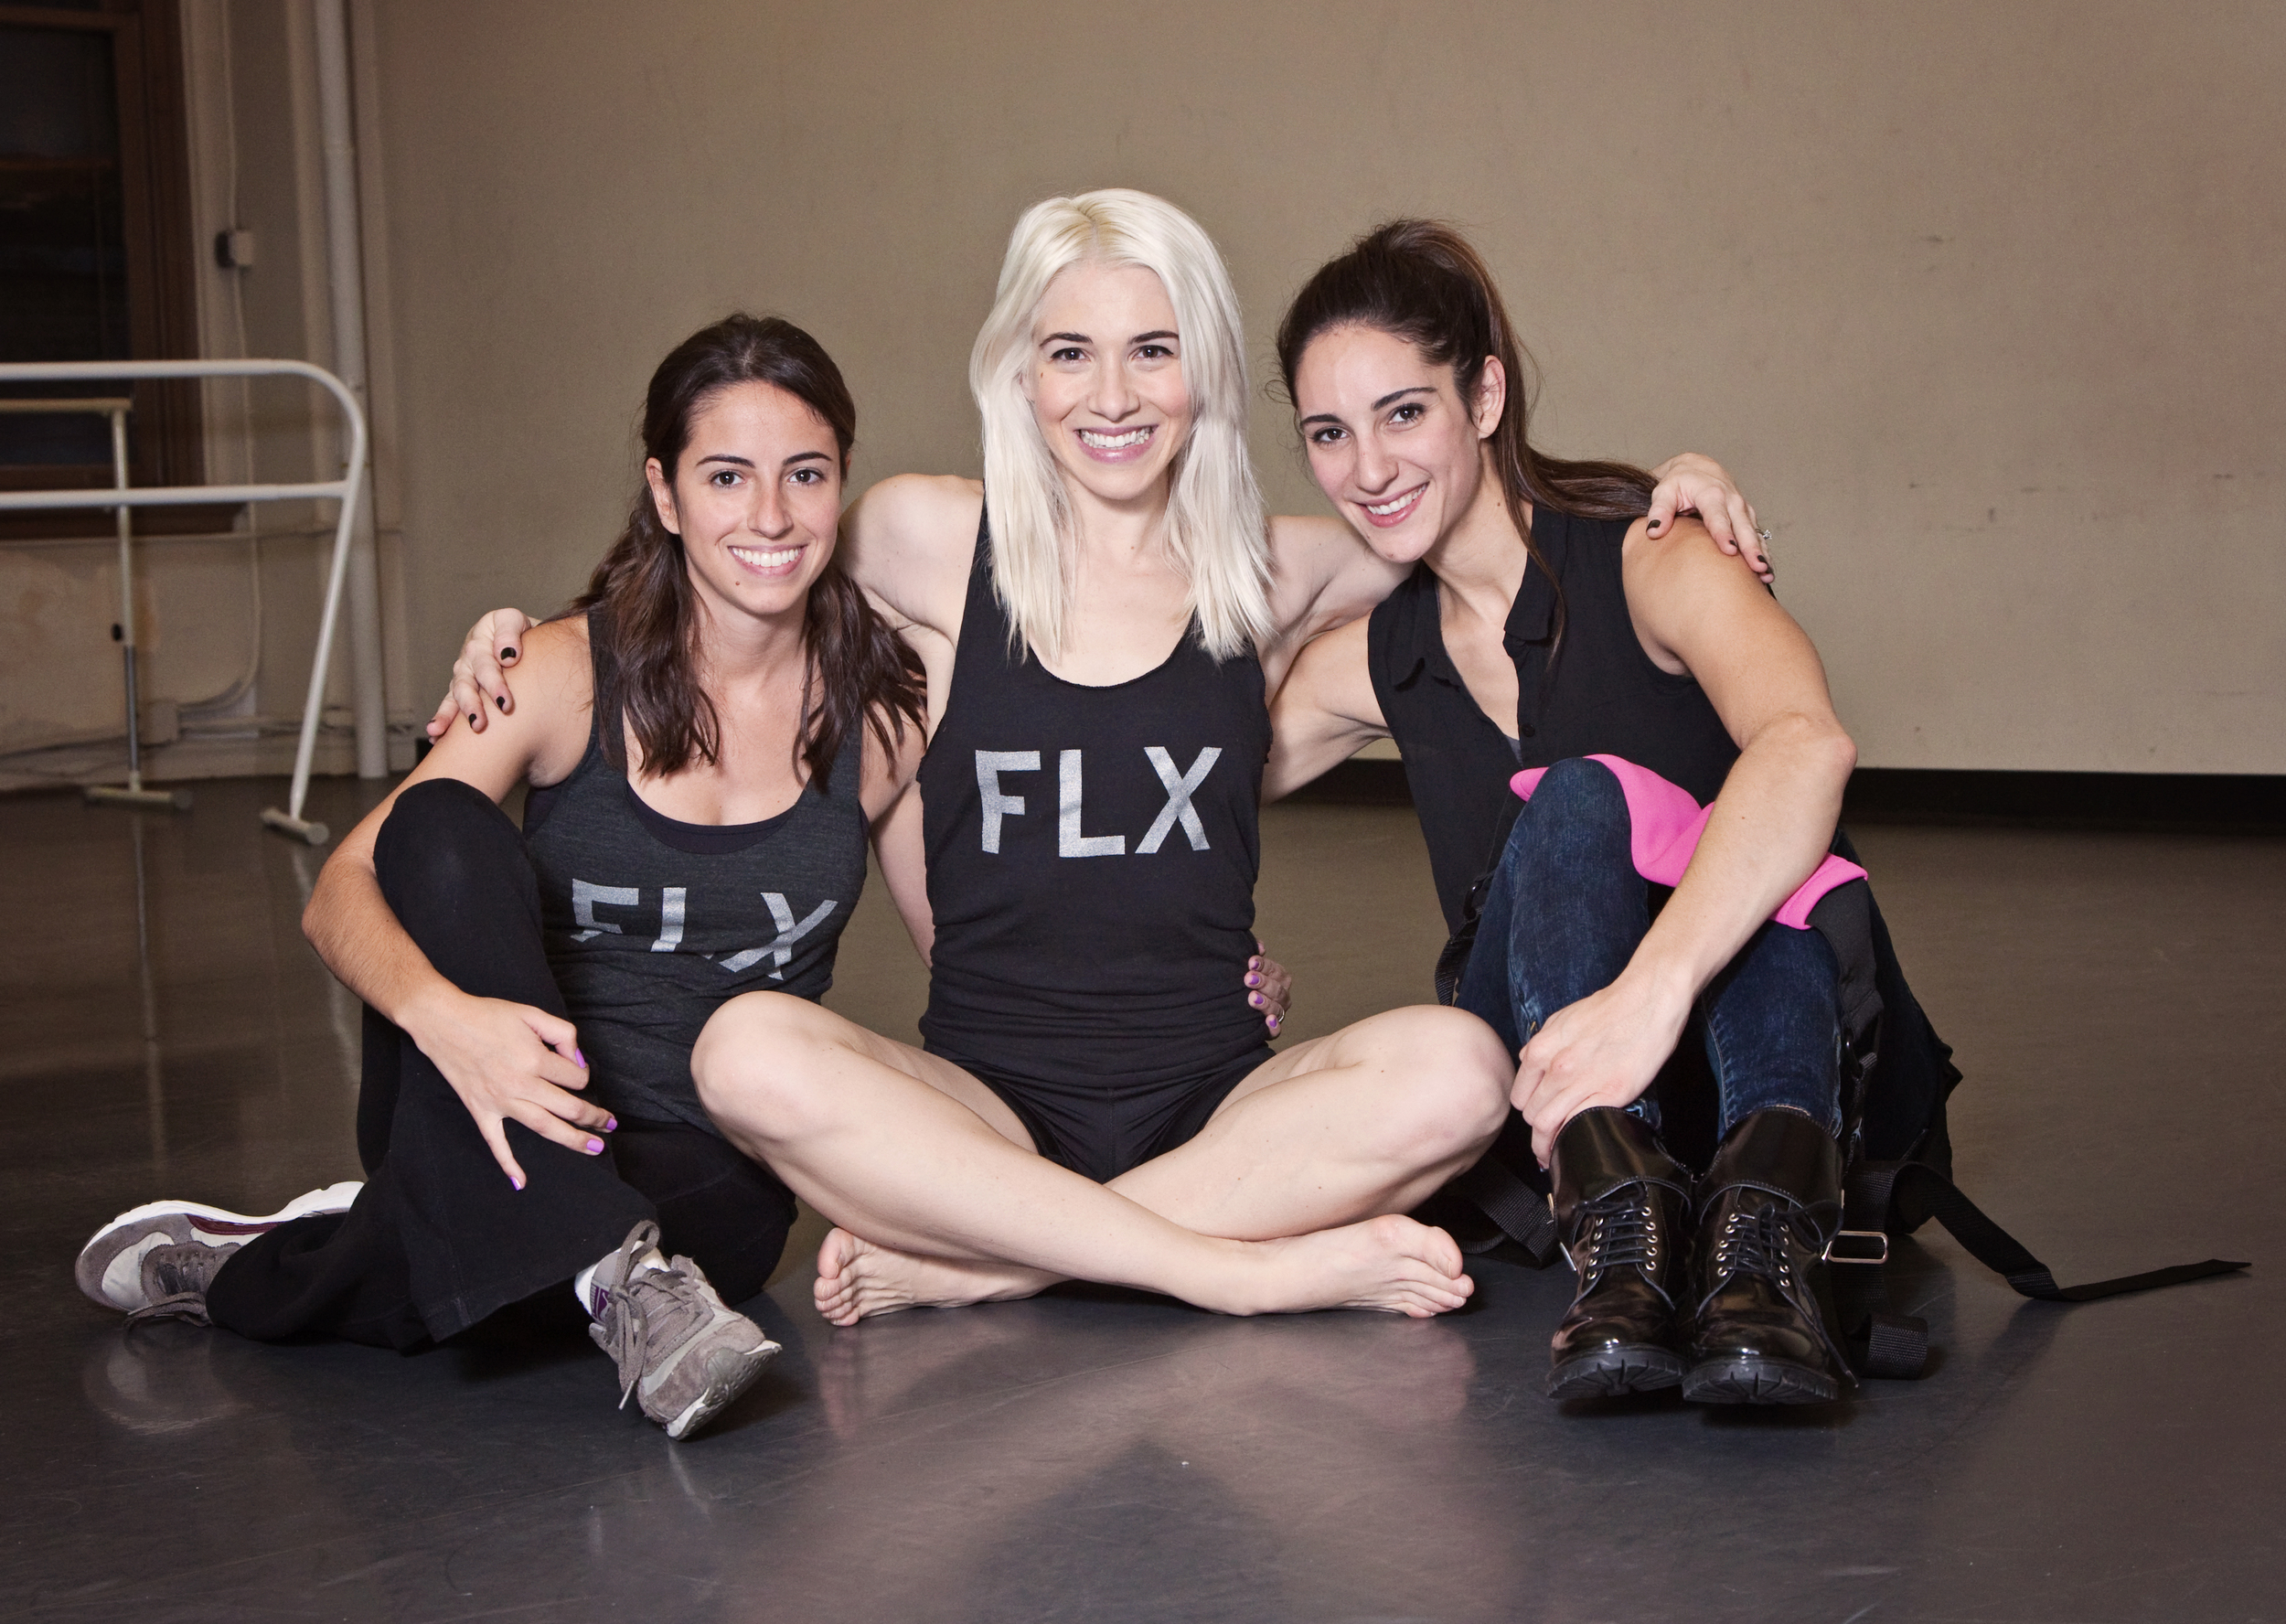 Left to Right: Renata Pavam (Photographer), Adrienne Canterna (Bad Boys of Ballet), and Rachel Hamrick (FLX Founder)